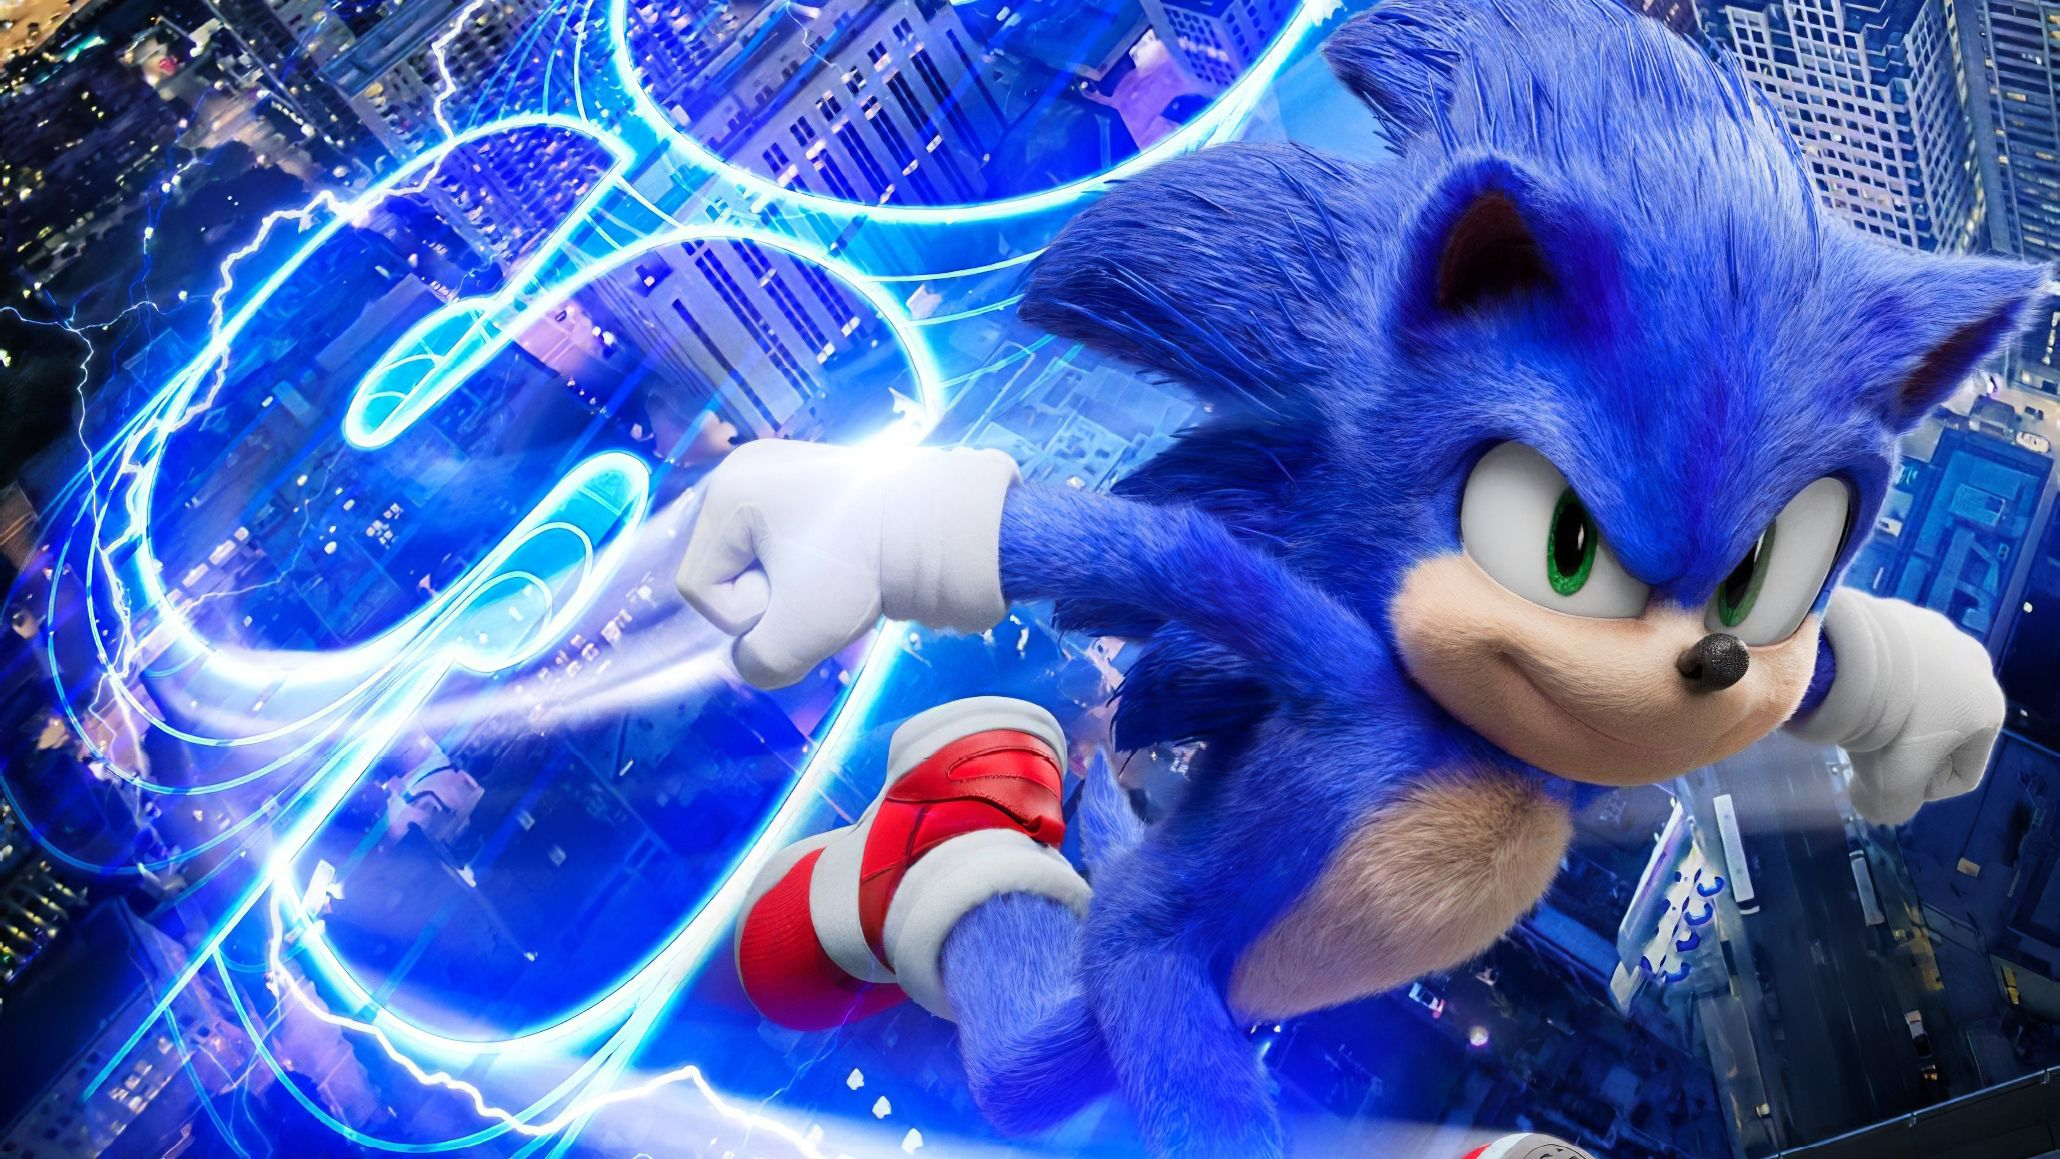 Sonic The Hedgehog 2020 Movie Wallpapers Top Free Sonic The